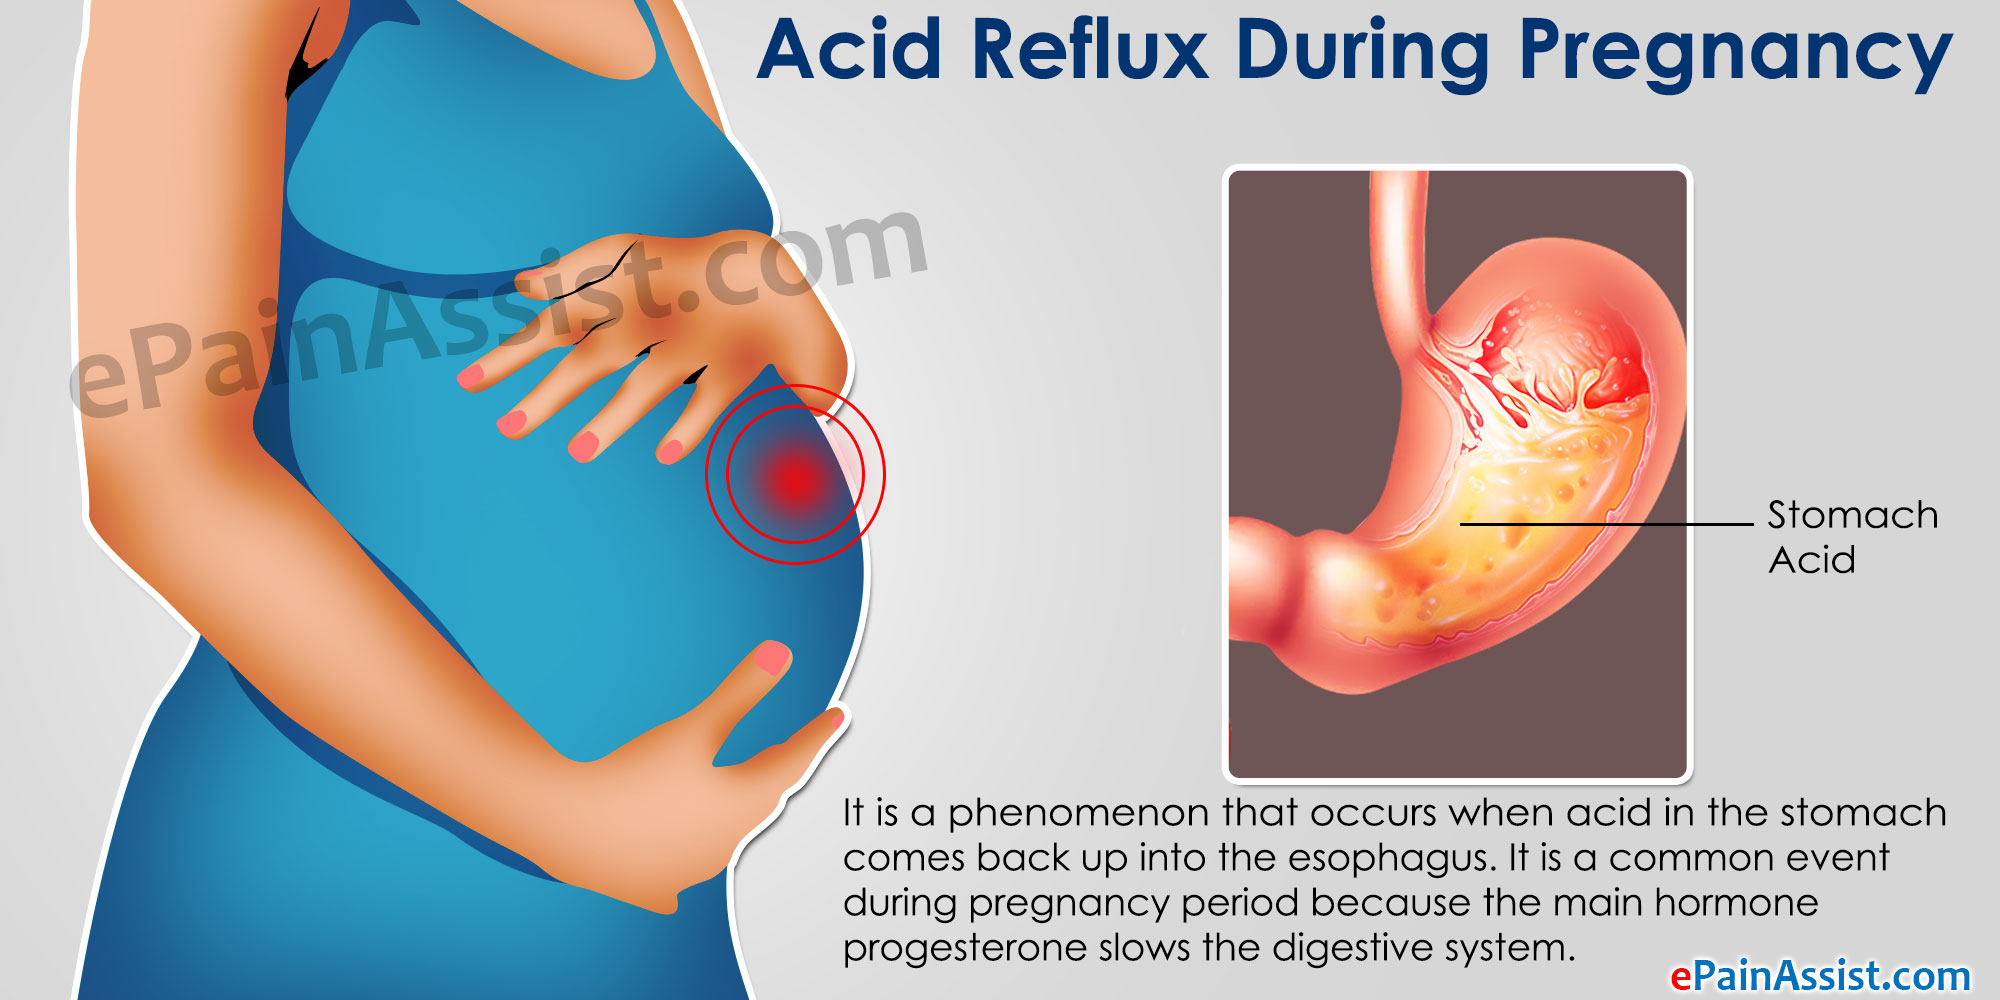 Acid Reflux During Pregnancy